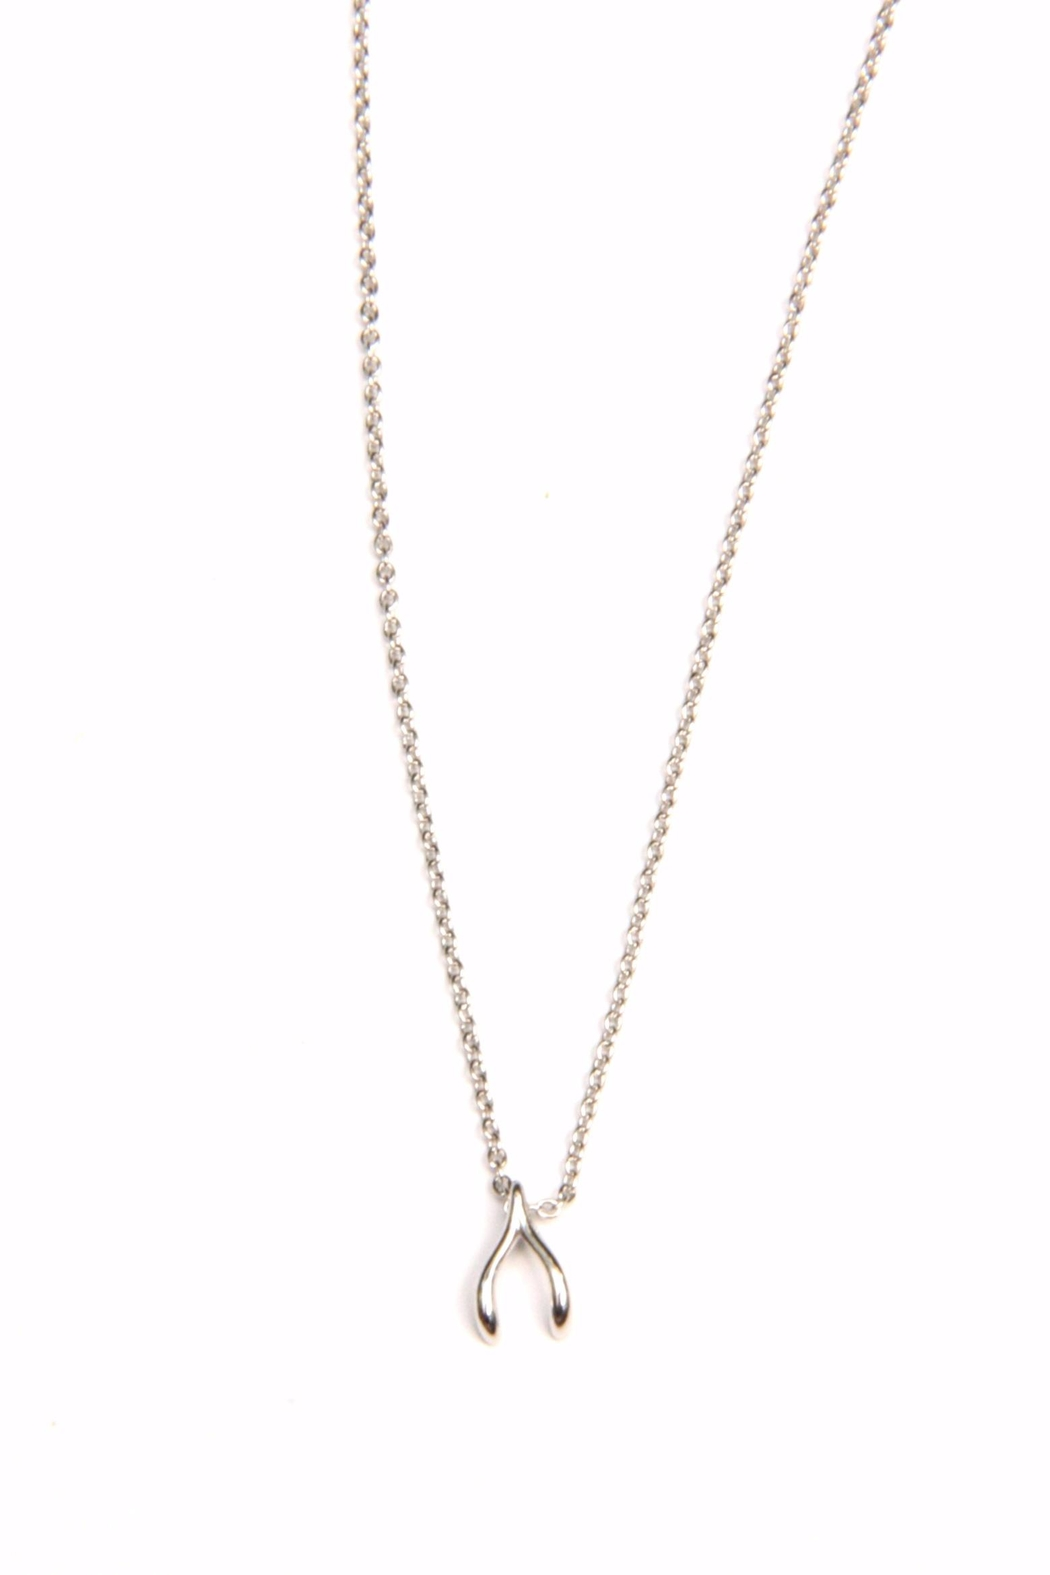 Light Years Collection Dainty Wishbone Necklace - Main Image